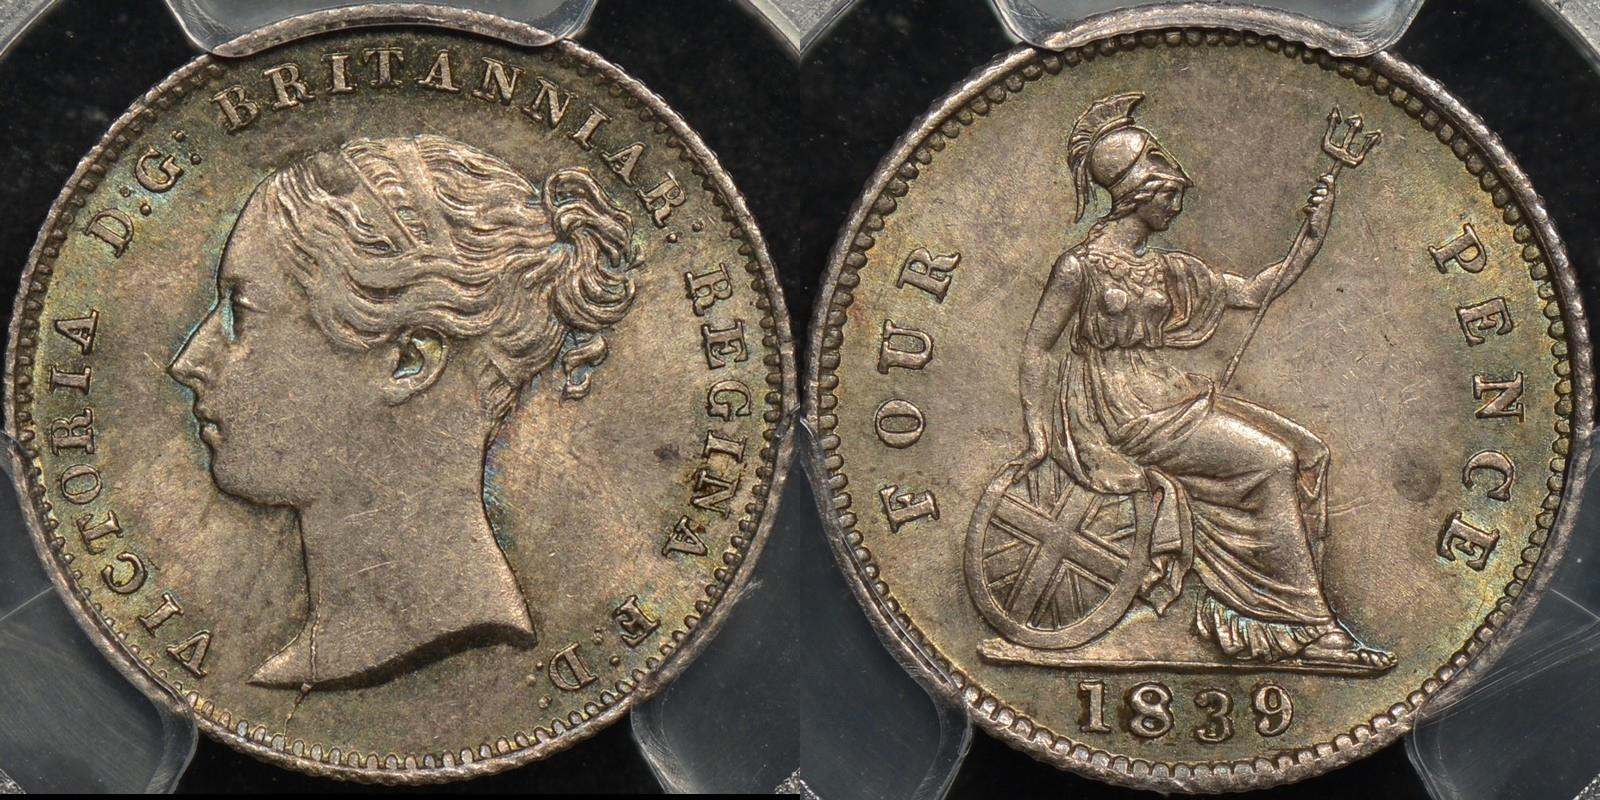 Great britain 1839 fourpence 4d km 731.1 PCGS MS62 Uncirculated